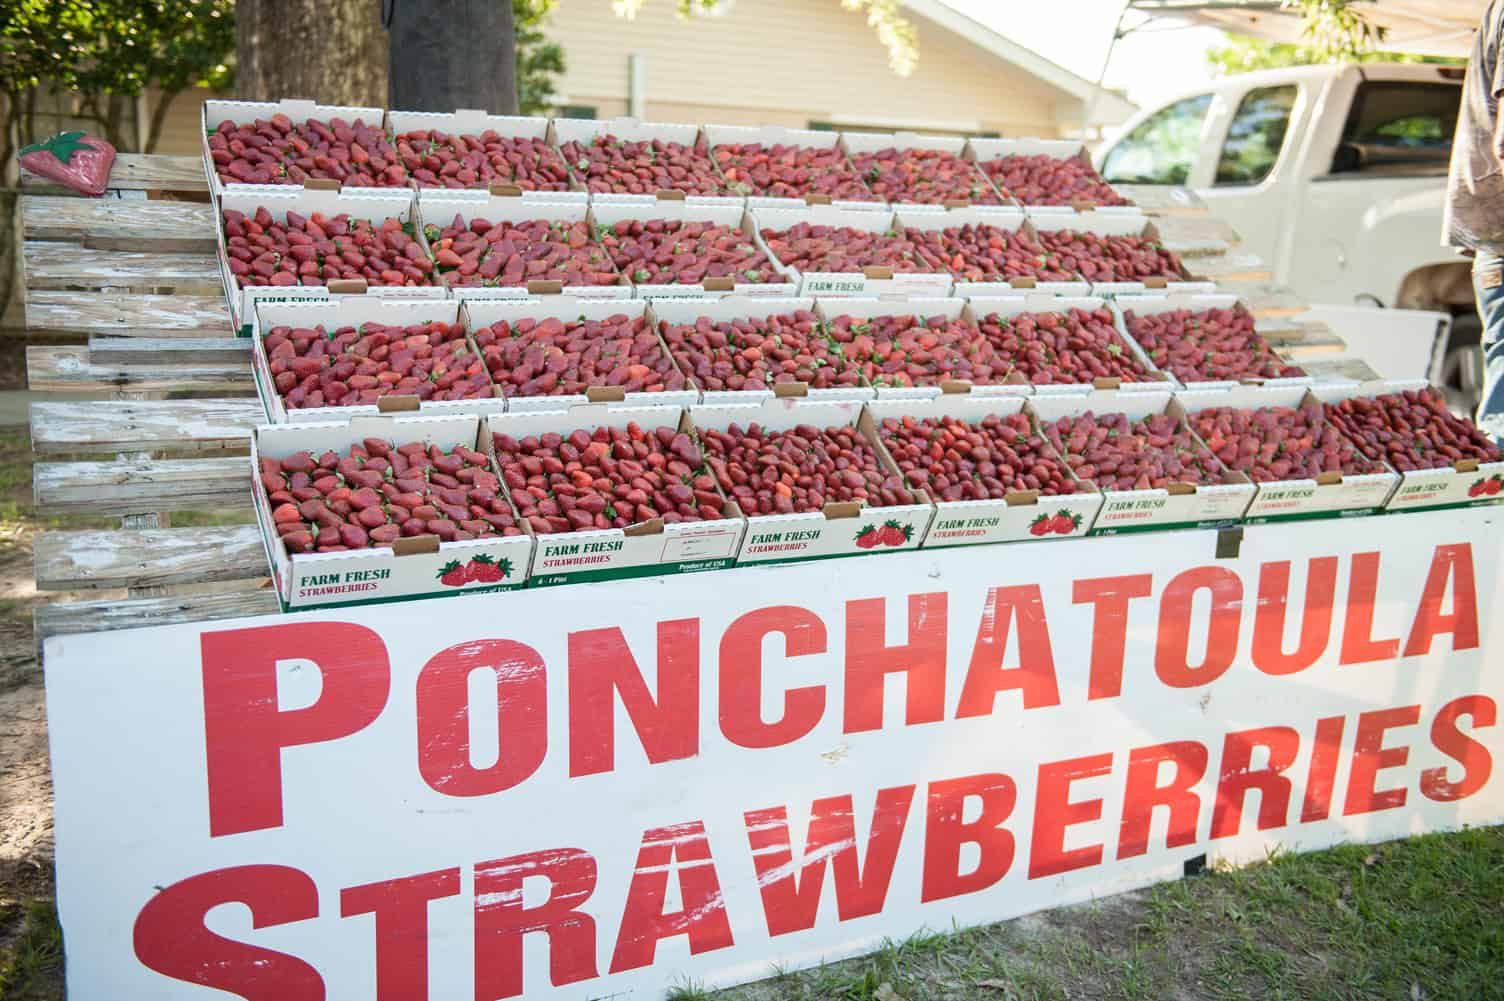 Ponchatoula Strawberry Festival